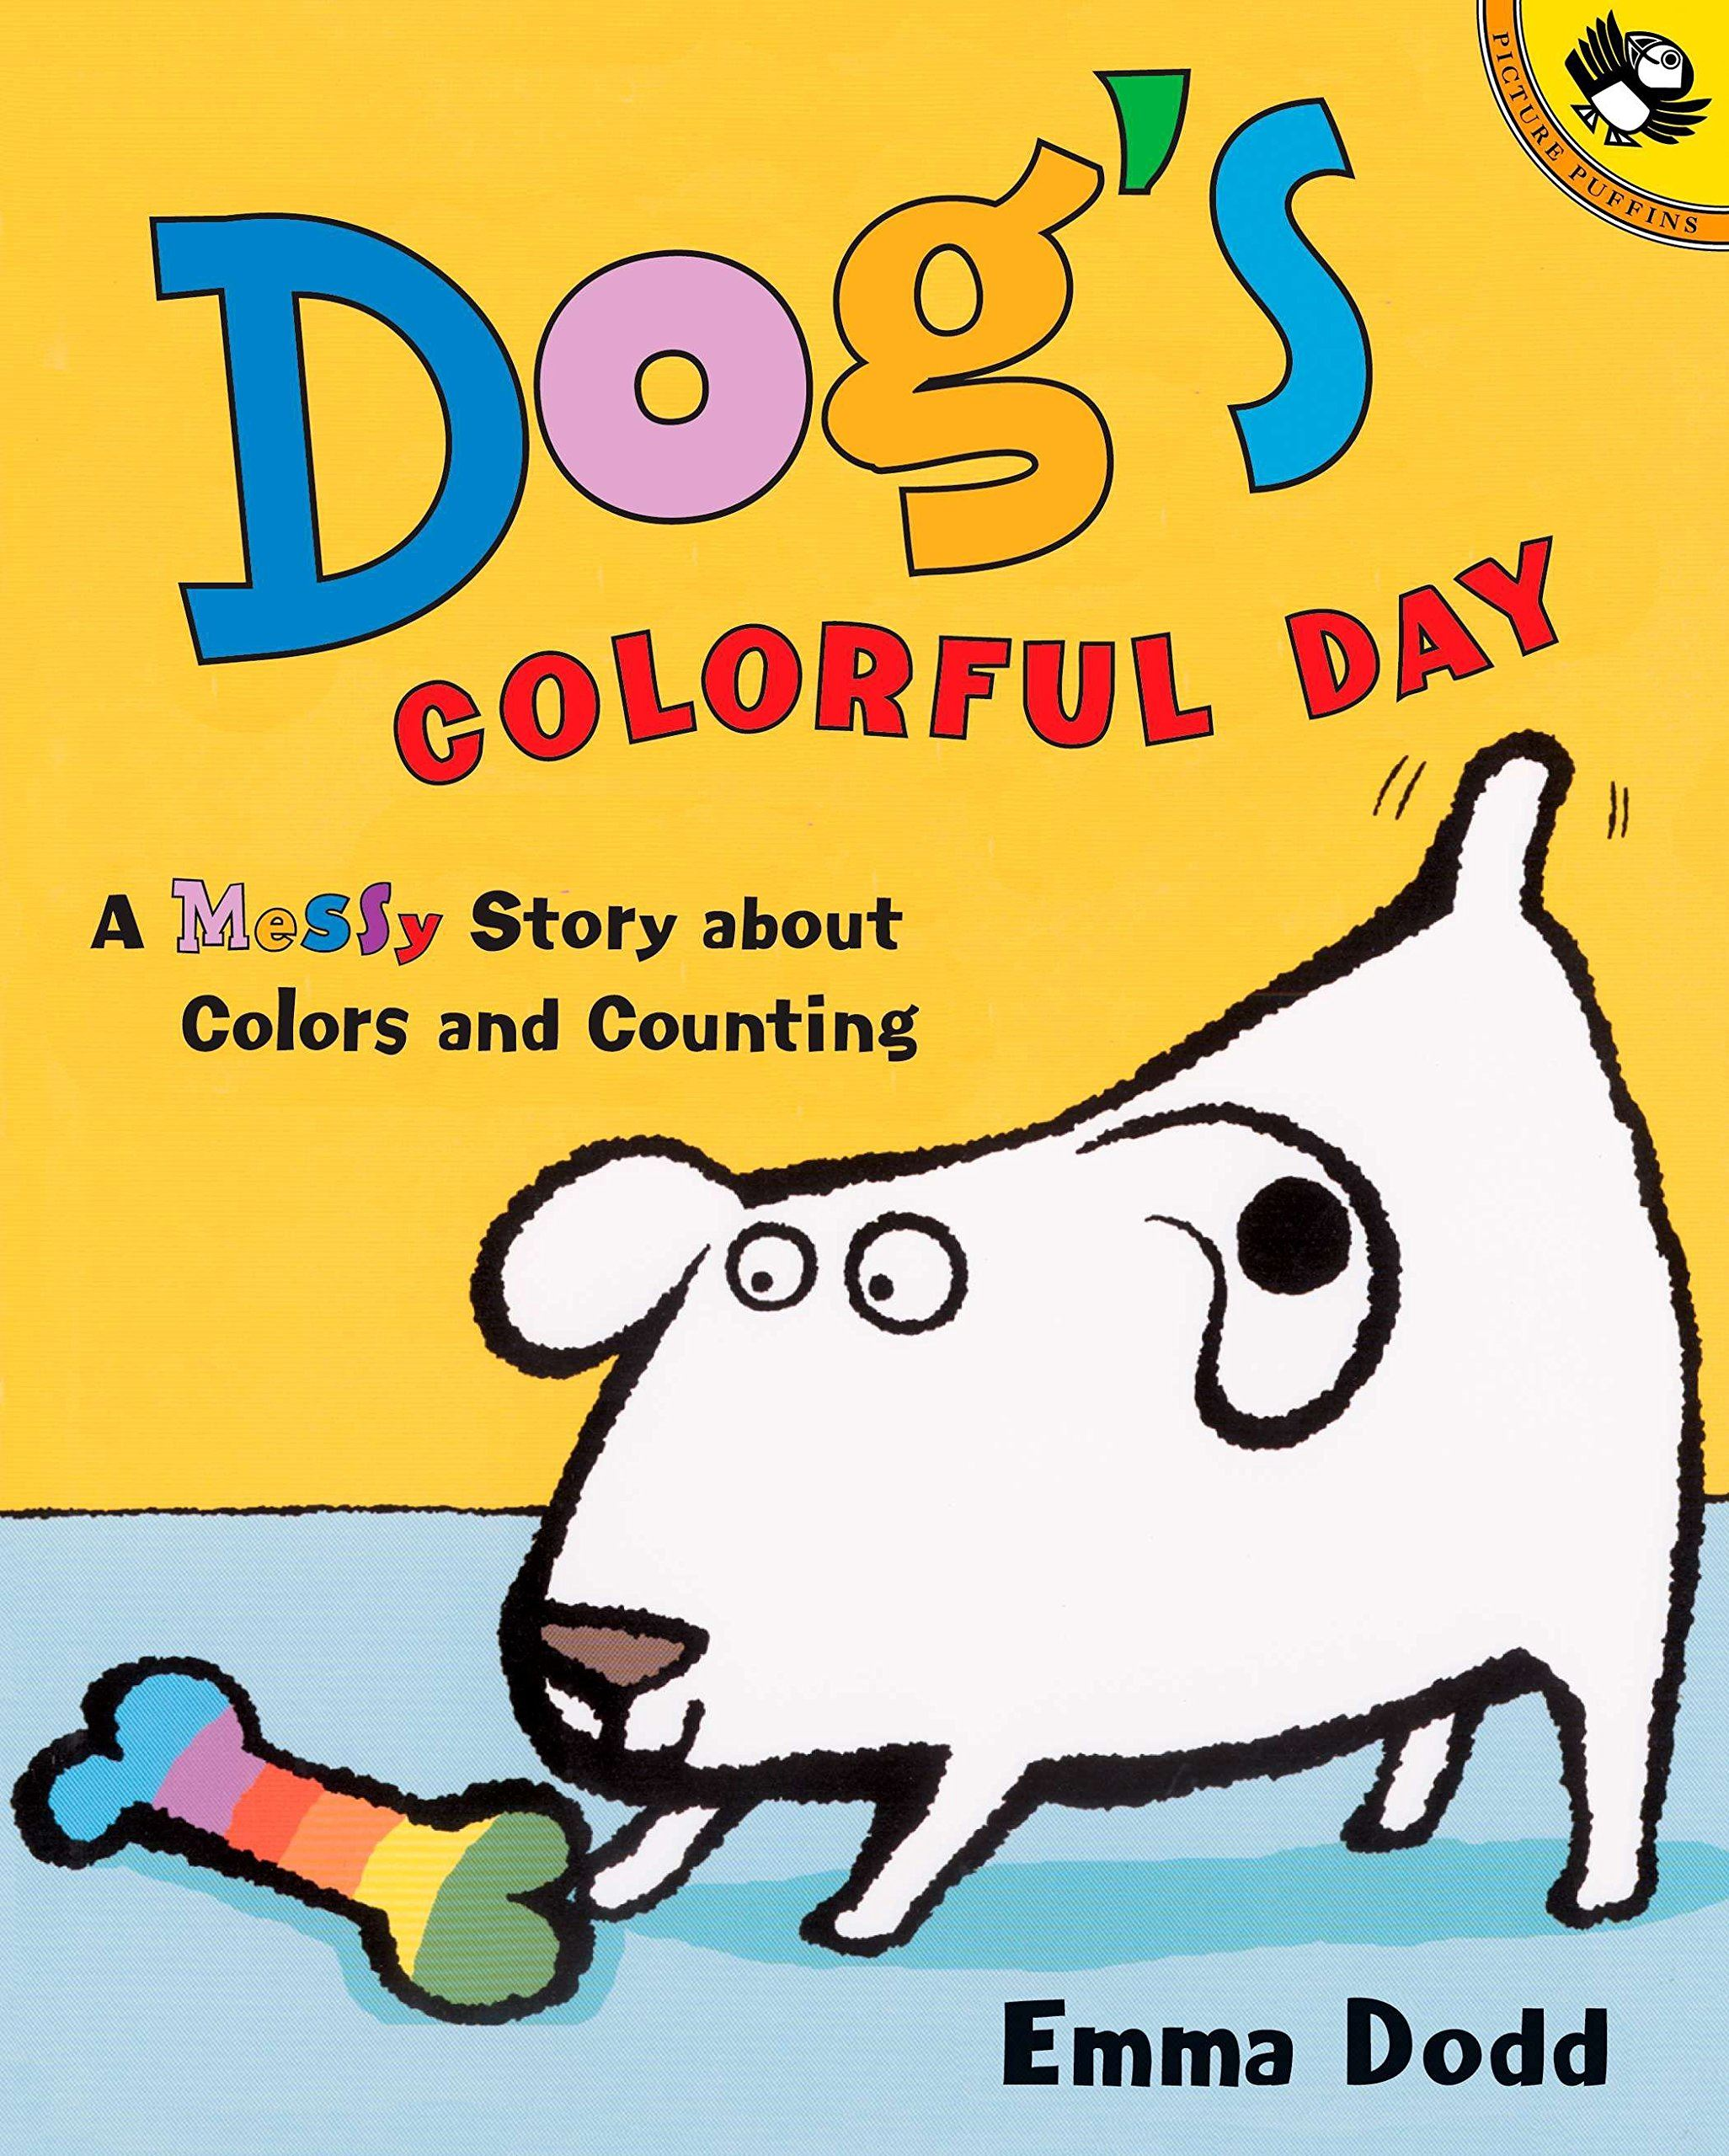 book cover for dog's colorful day by emma dodd